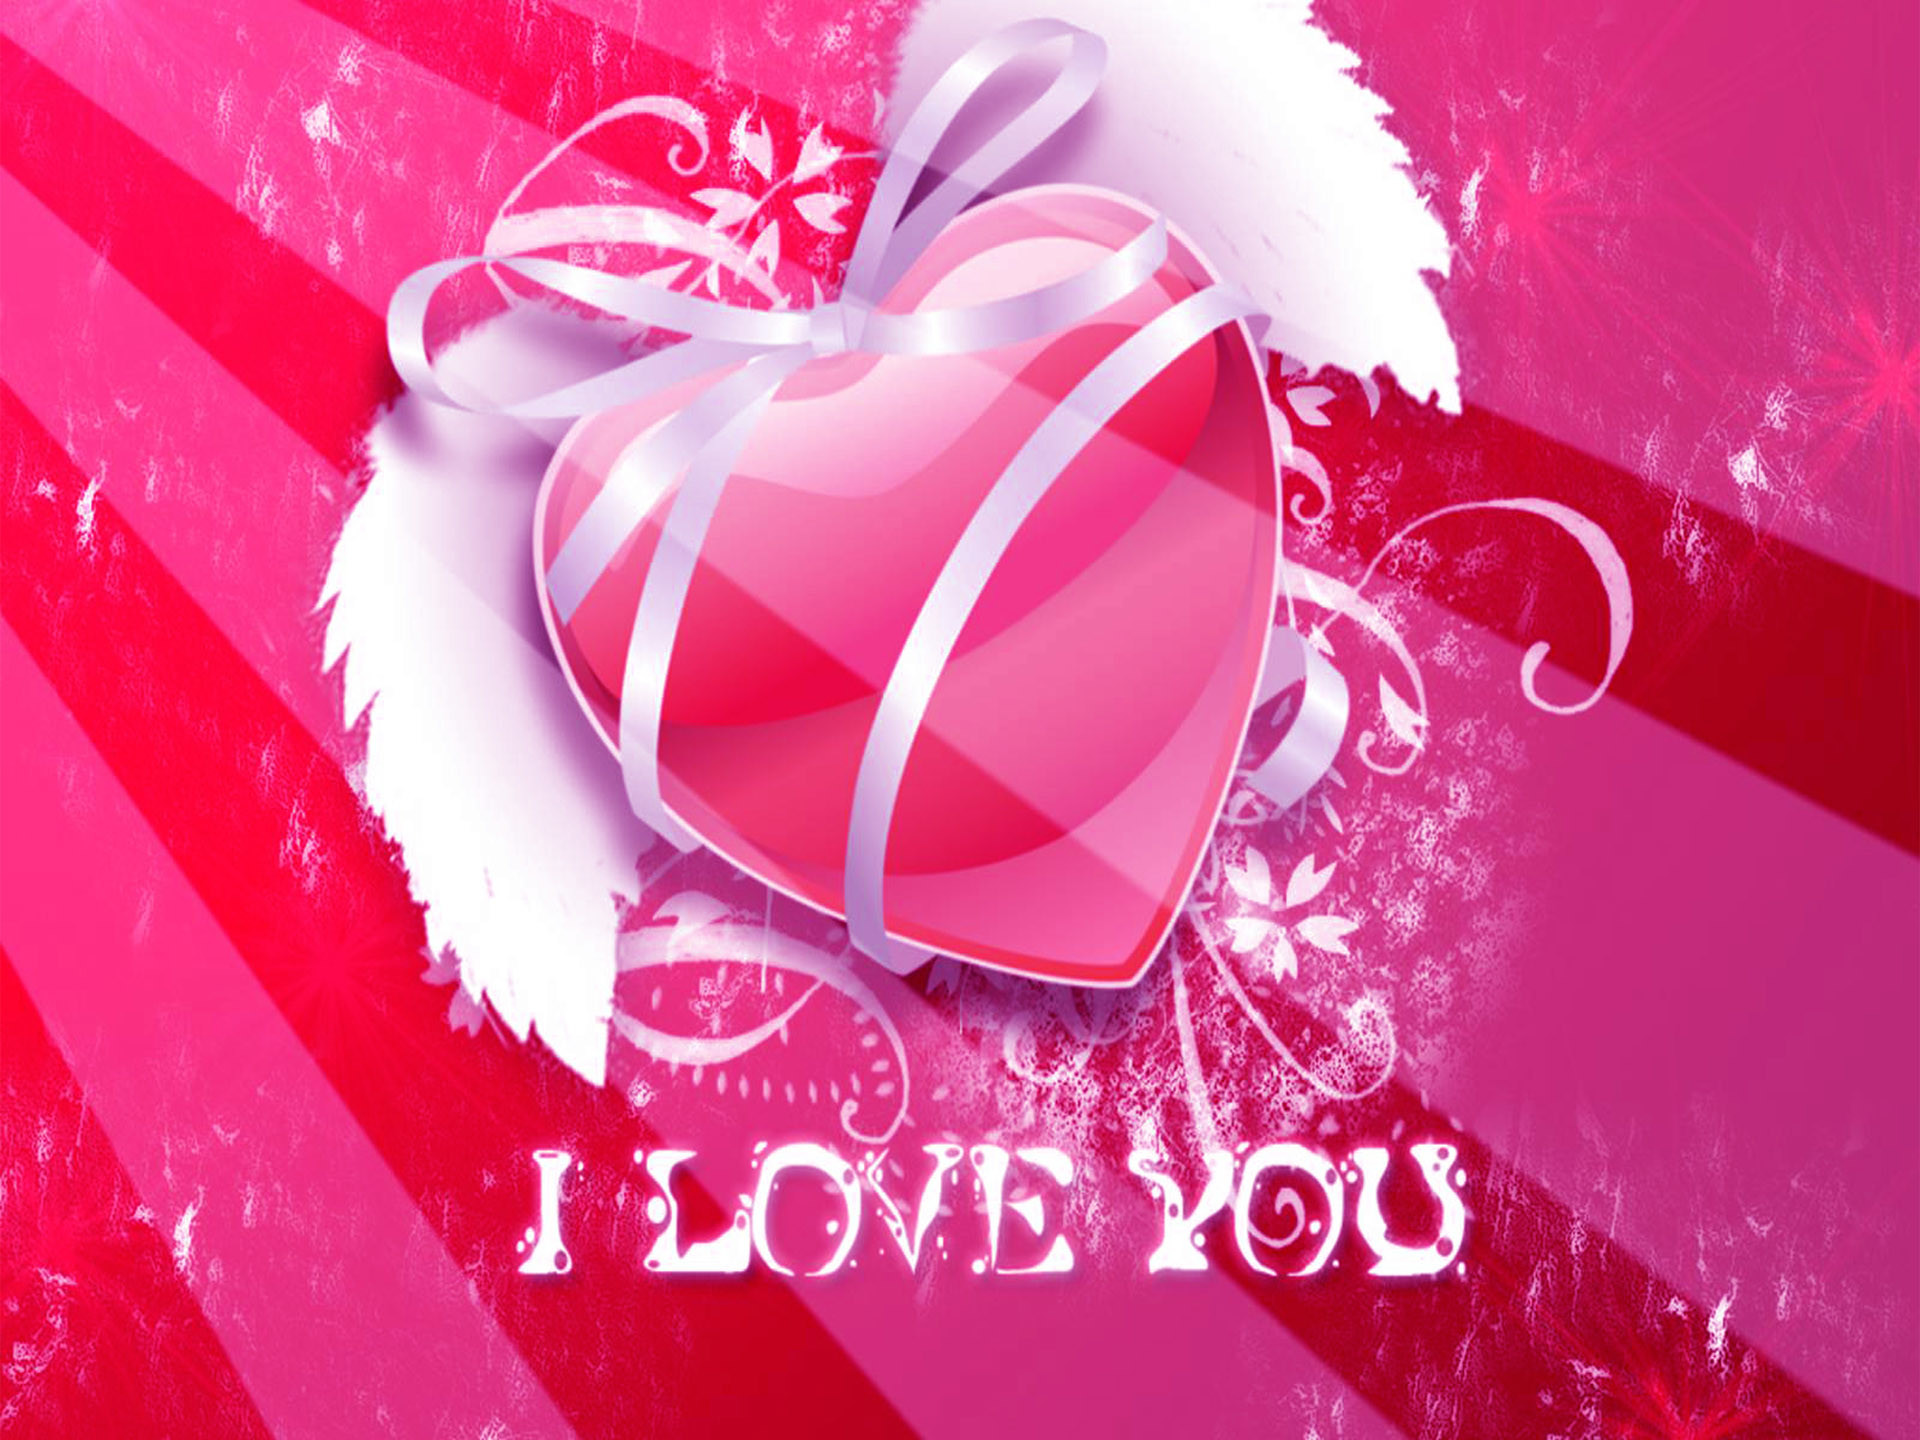 10 Top Cute Love Heart Wallpapers For Mobile Full Hd 1920: Love Wallpapers Images ·①